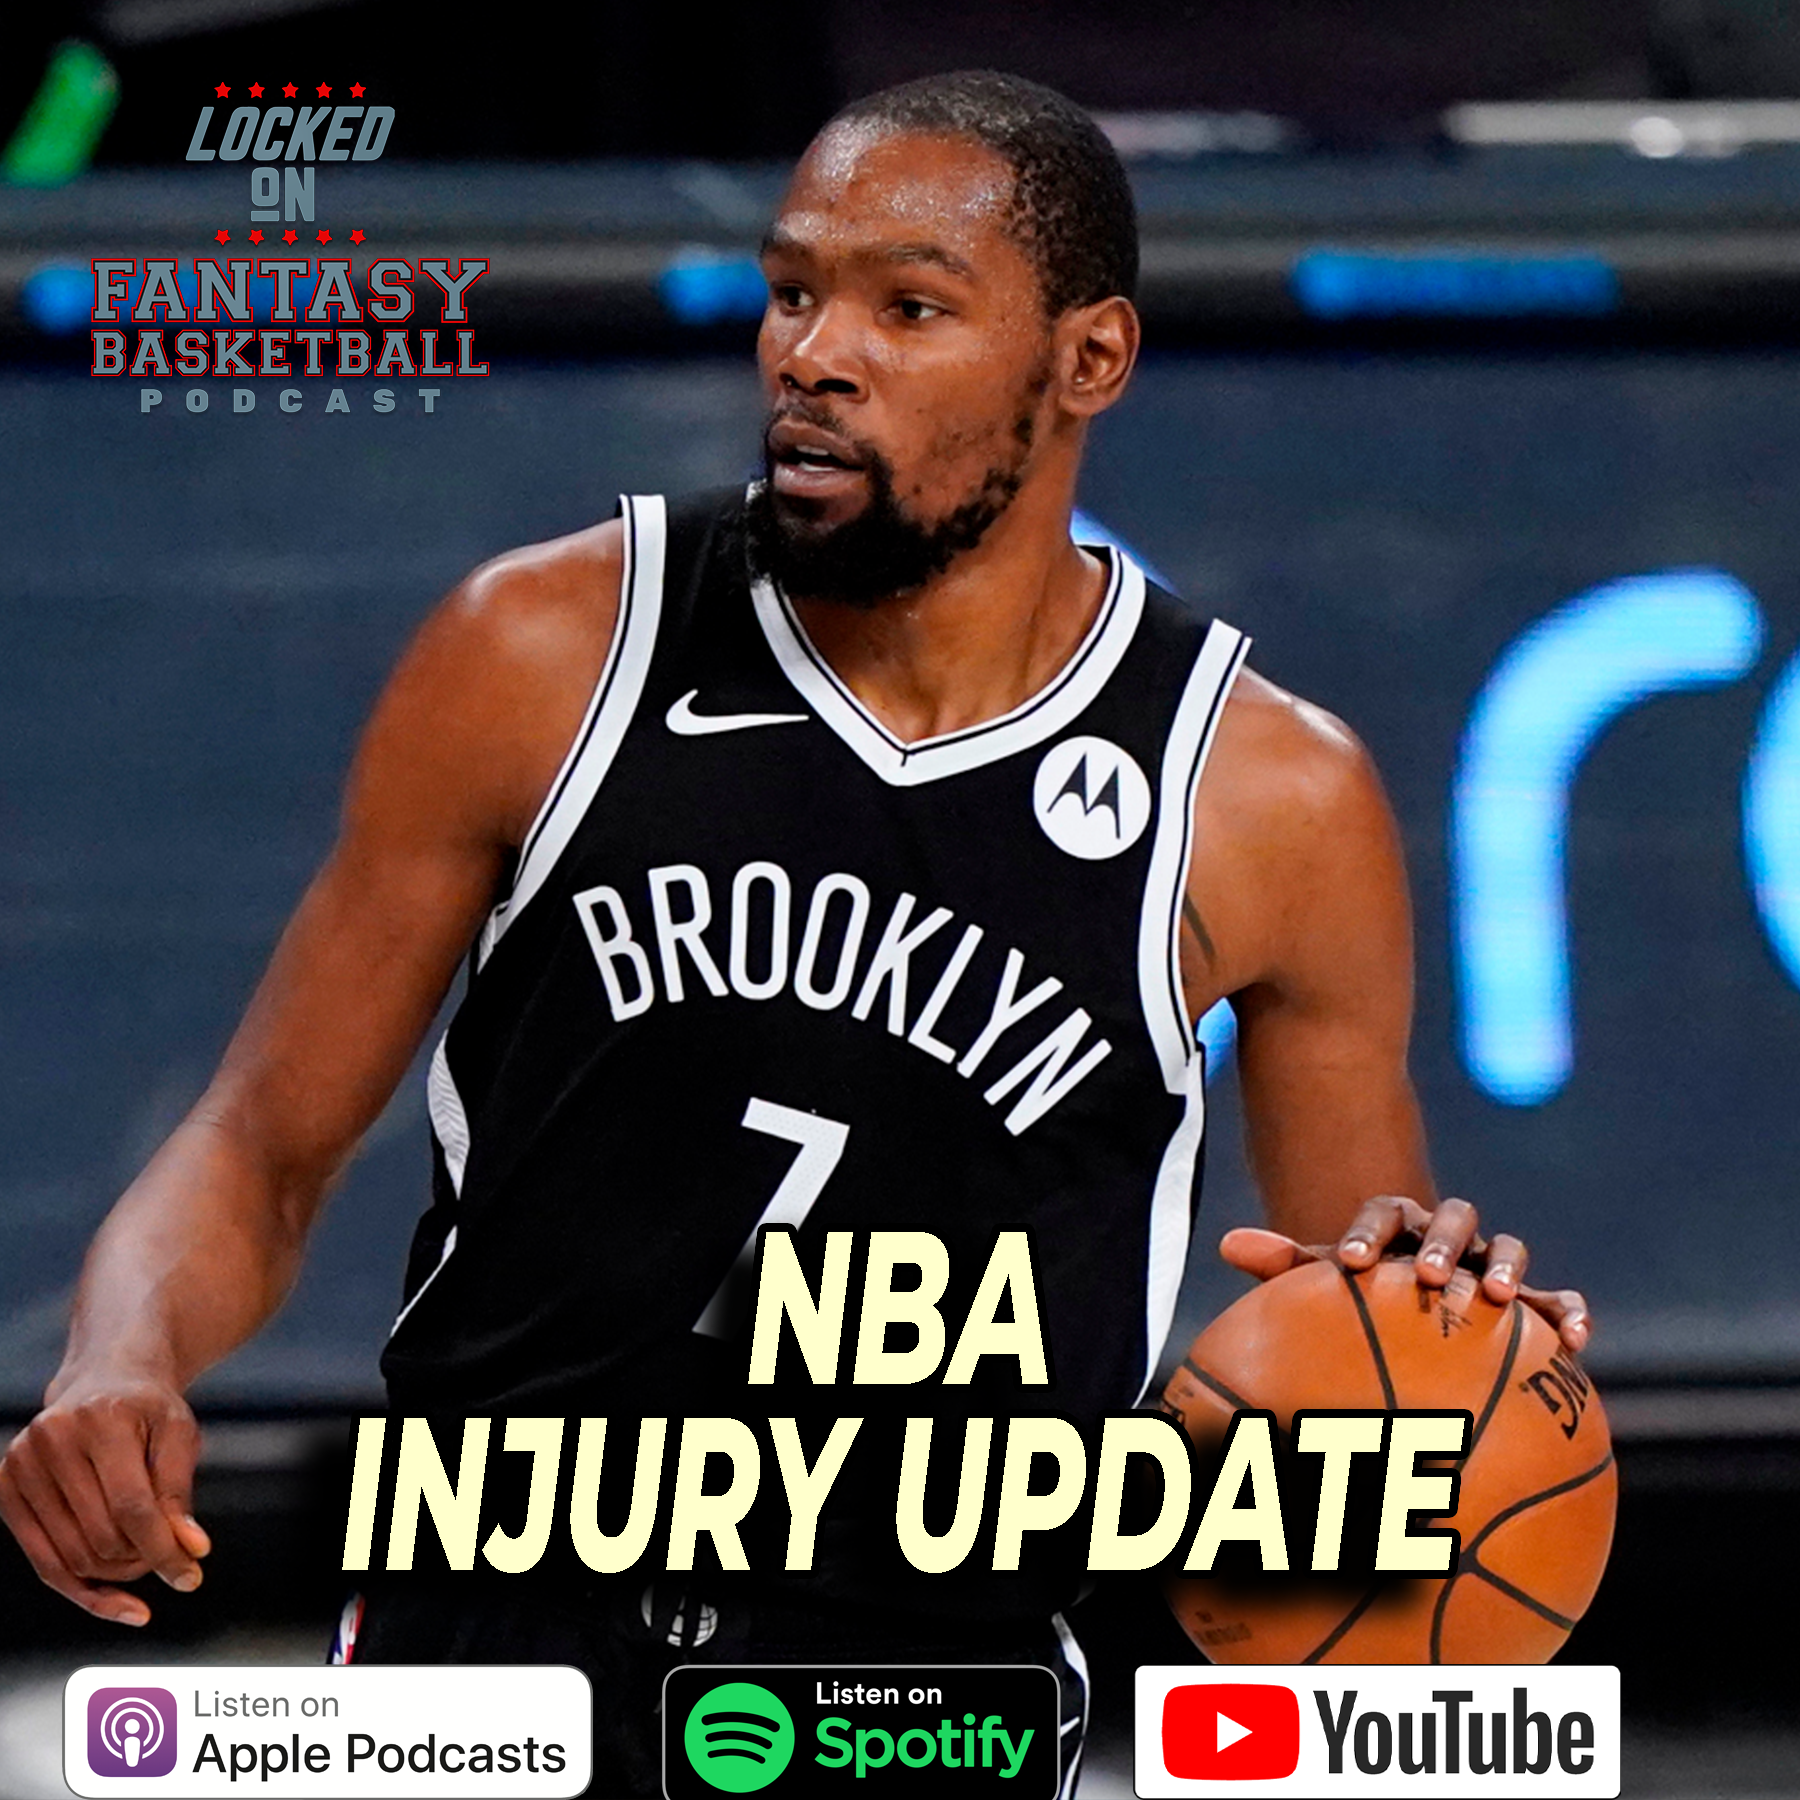 NBA Injury Update | When Is Kevin Durant Returning? | NBA Fantasy Basketball